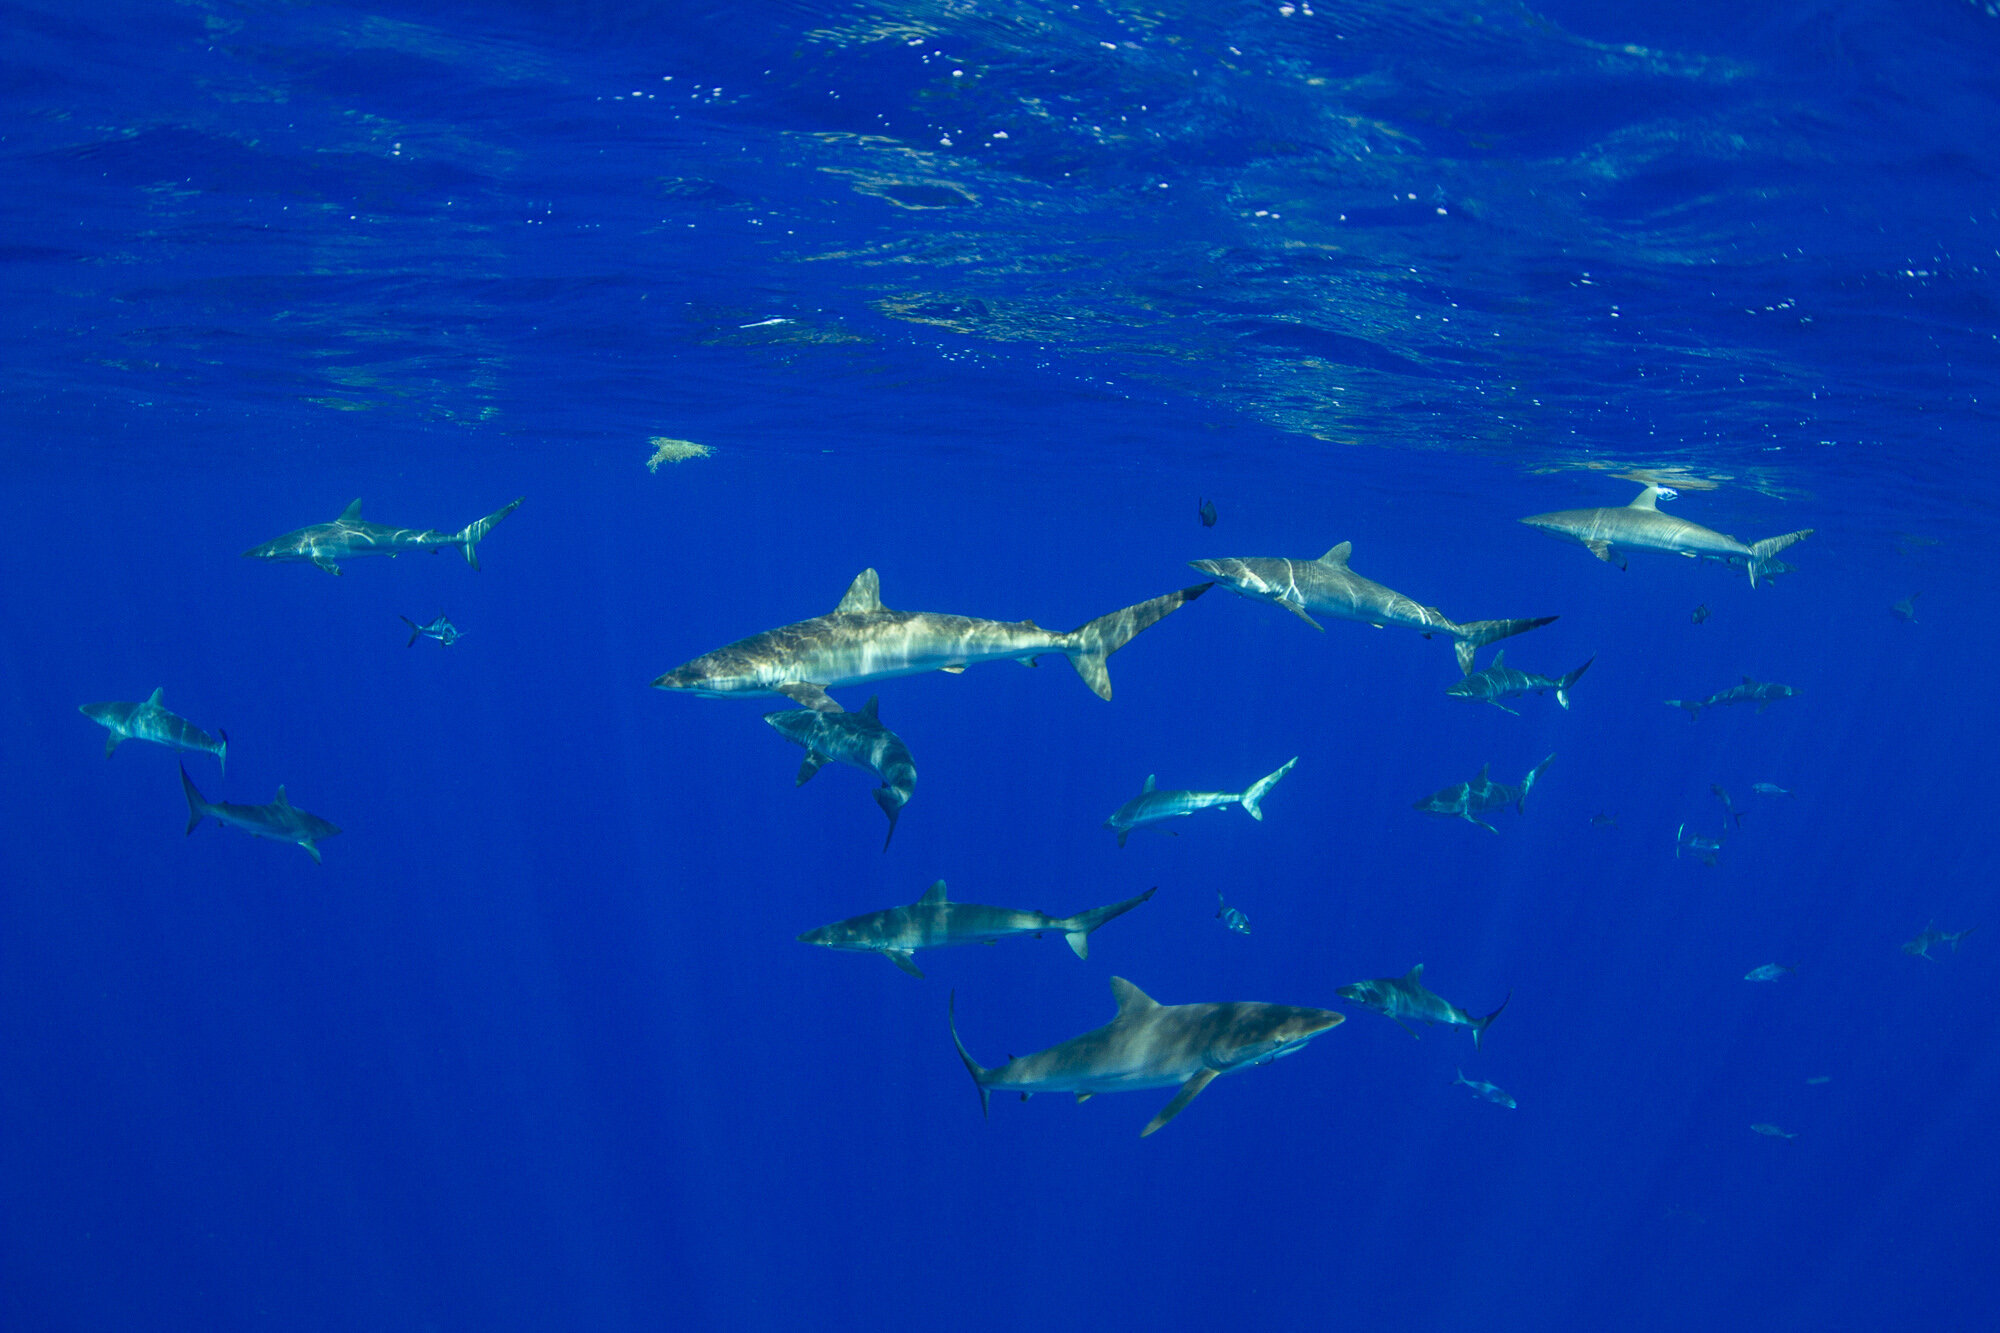 Over 40 silky sharks were present on arrival, with no bait in the water; these pelagic sharks are naturally pulled towards the Navy buoy to hunt